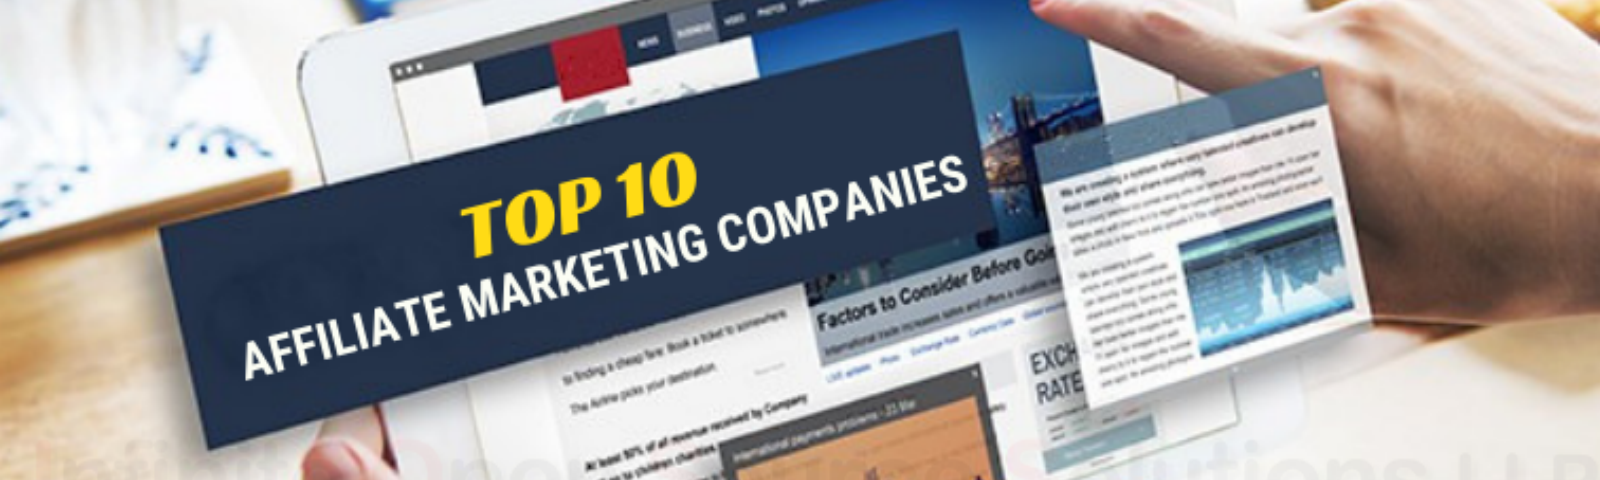 Top 10 Affiliate Marketing Companies - Abdul Majeed - Medium